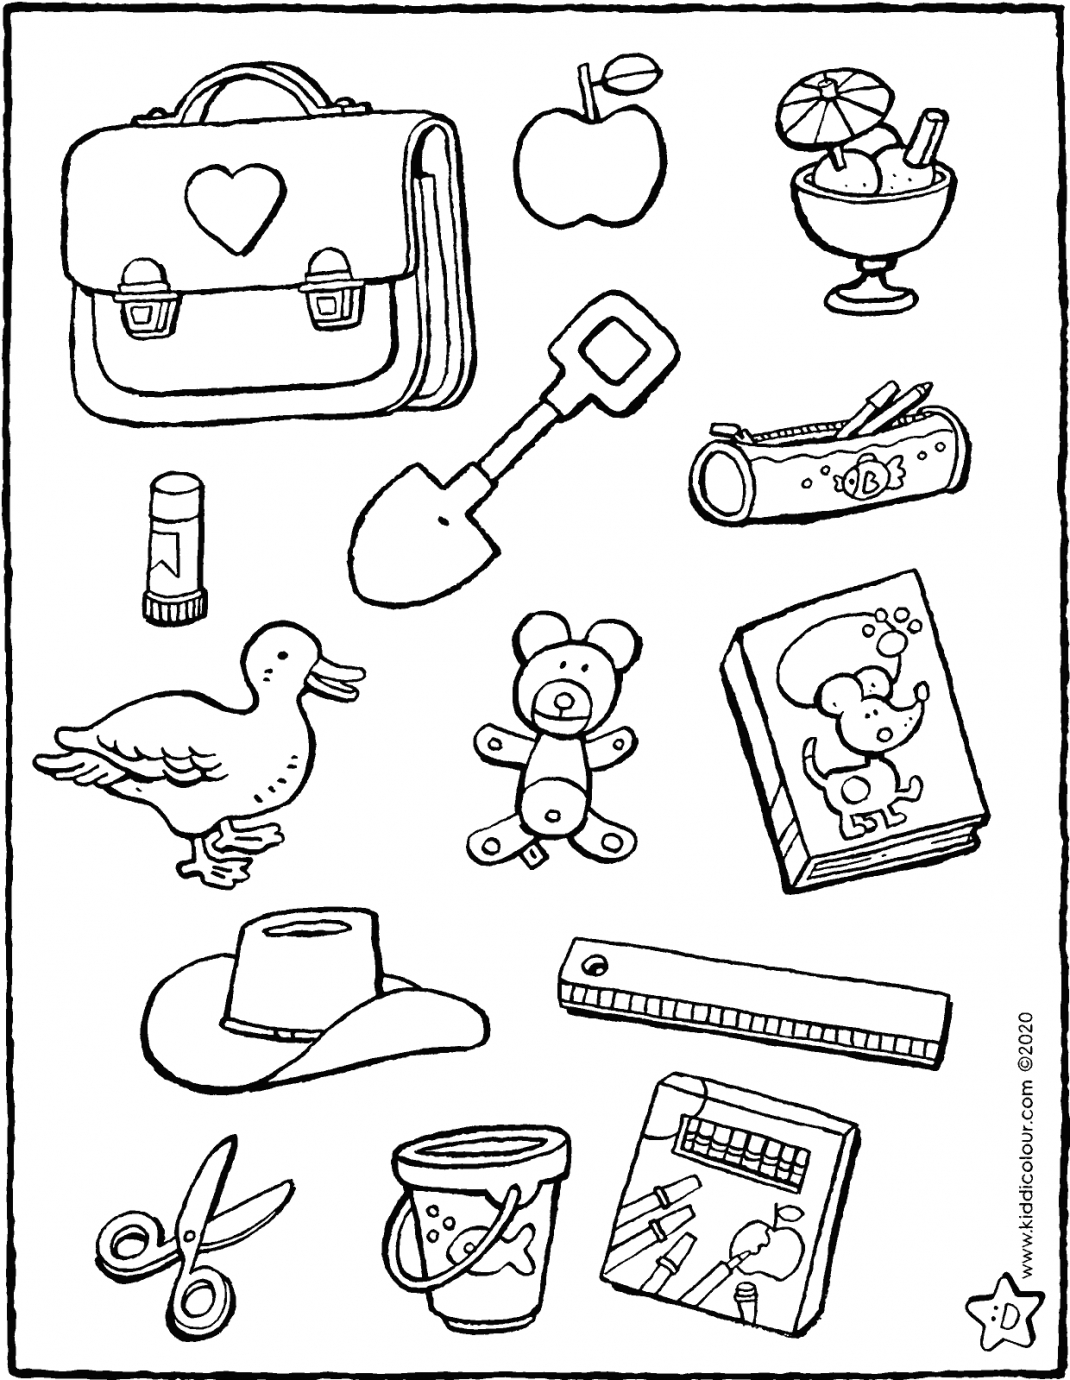 which objects would you find at school colouring page drawing picture 01V